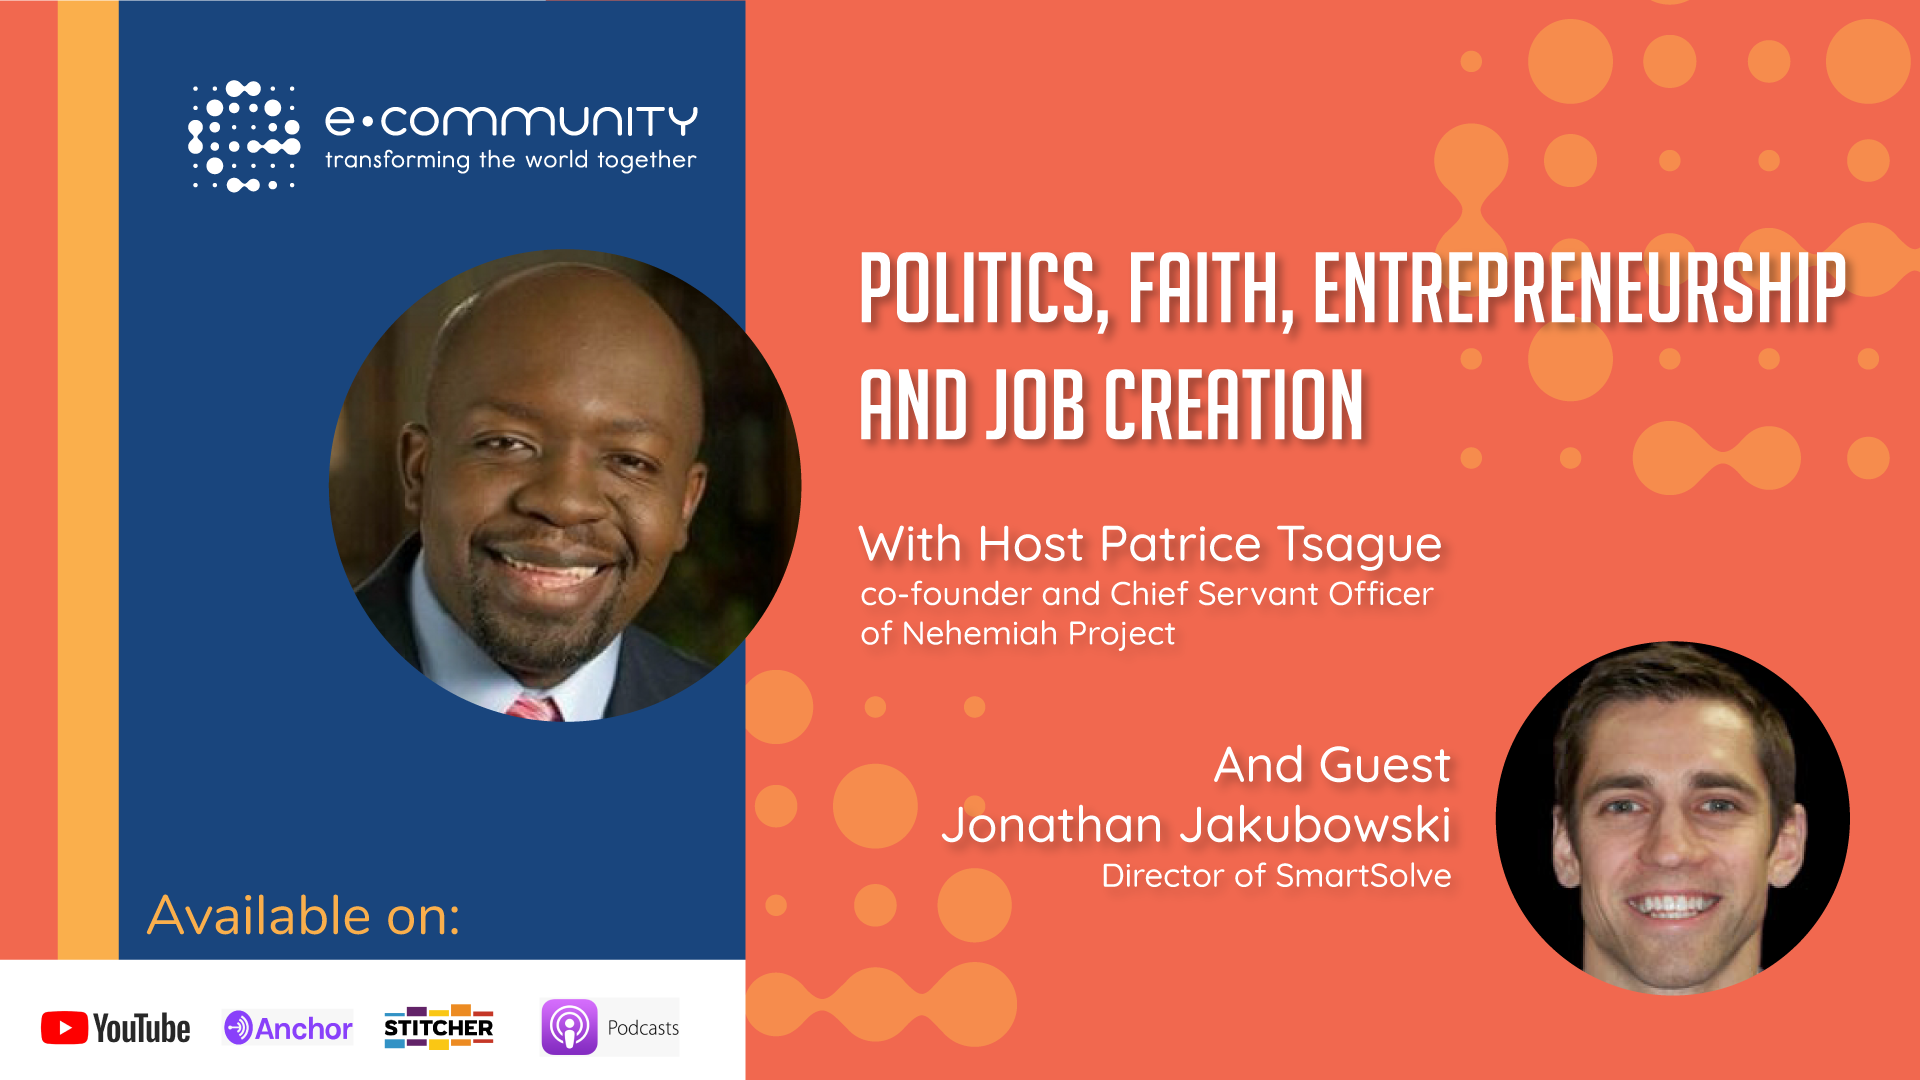 Politics, faith, Entrepreneurship and Job creation